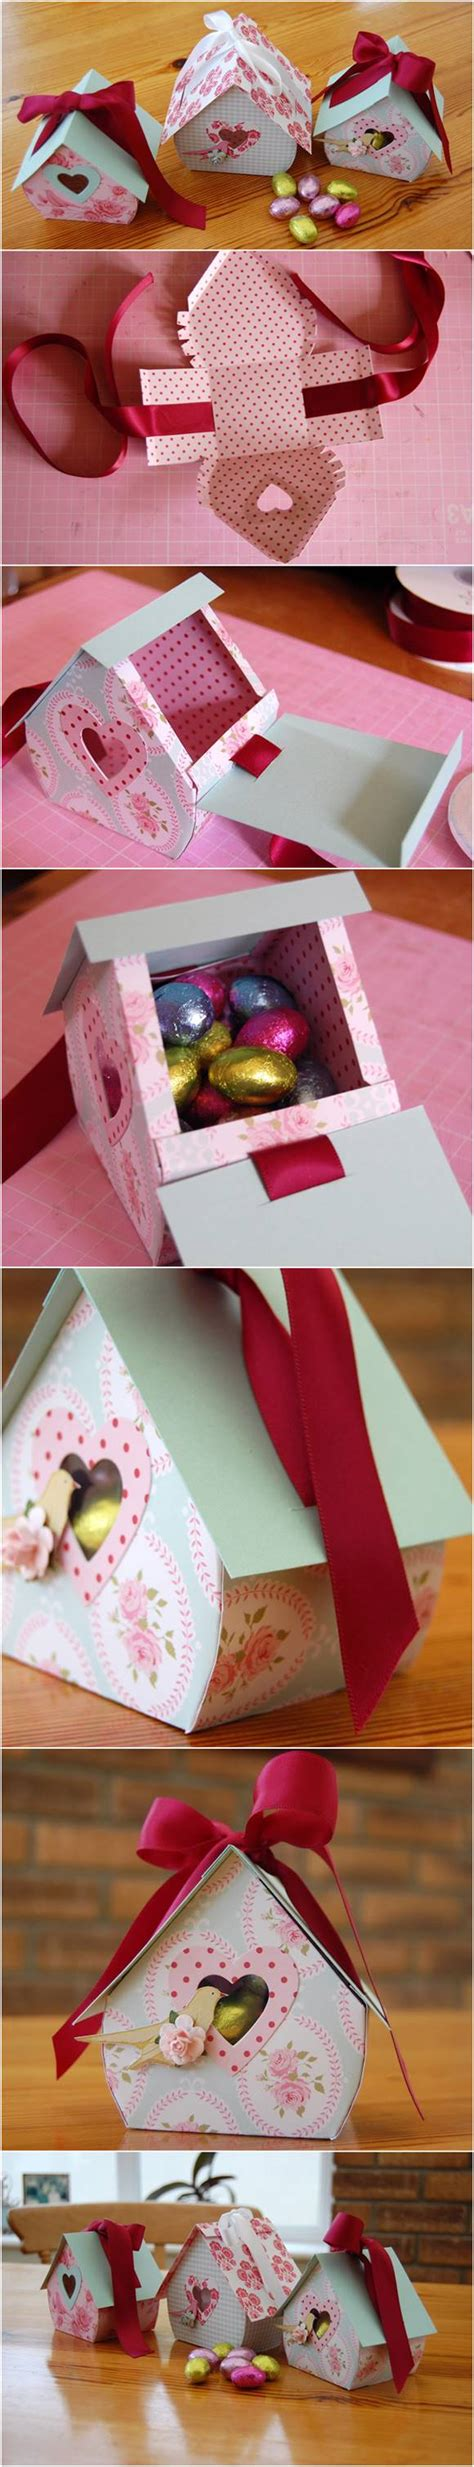 Very simple edit with smart layers. DIY Bird Nest Gift Box | iCreativeIdeas.com